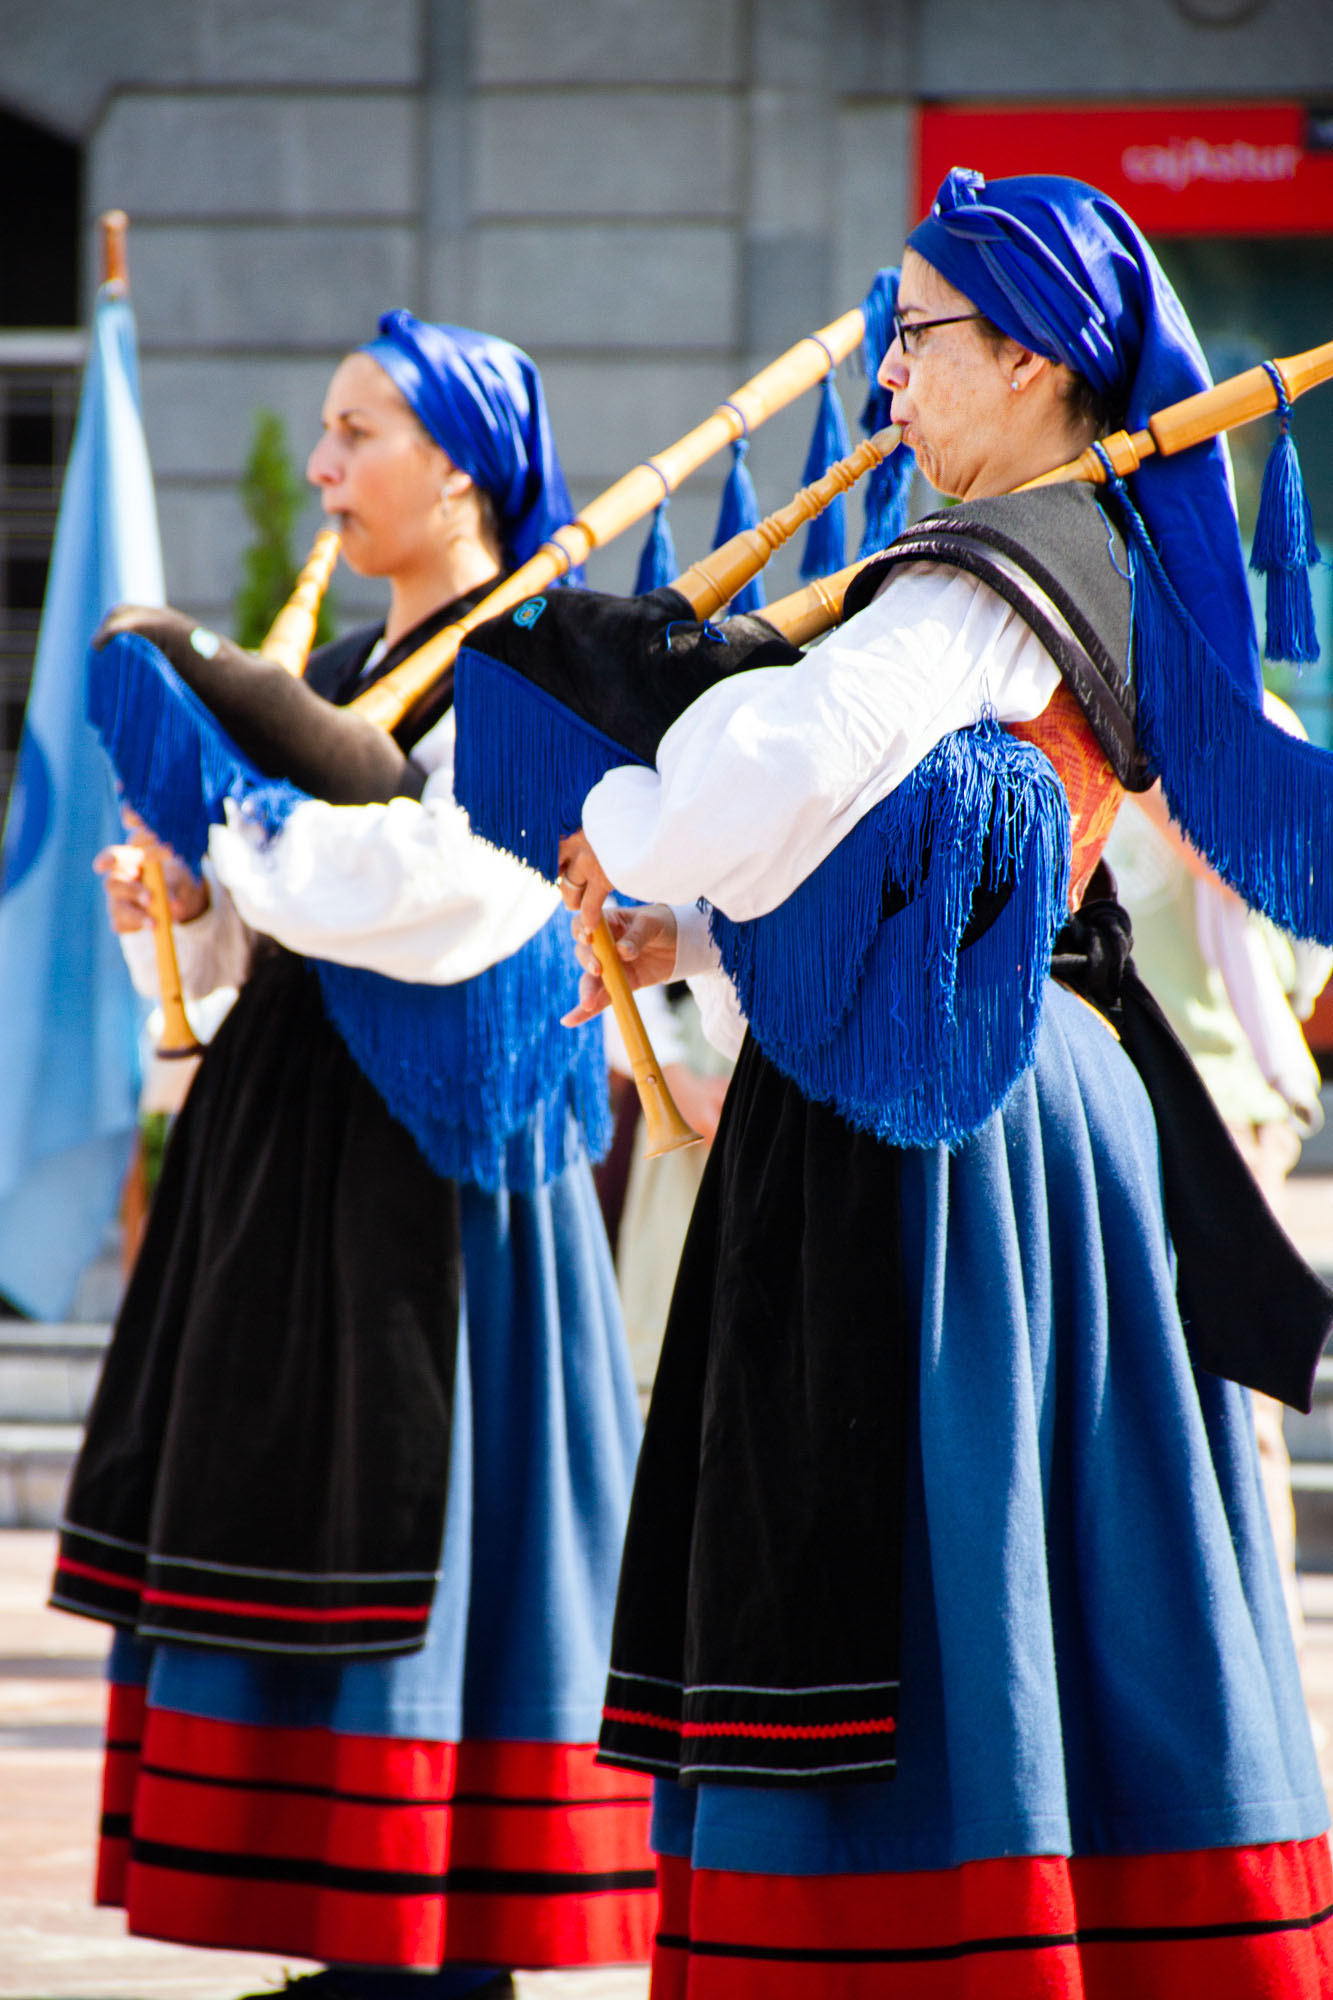 Women playing bagpipes